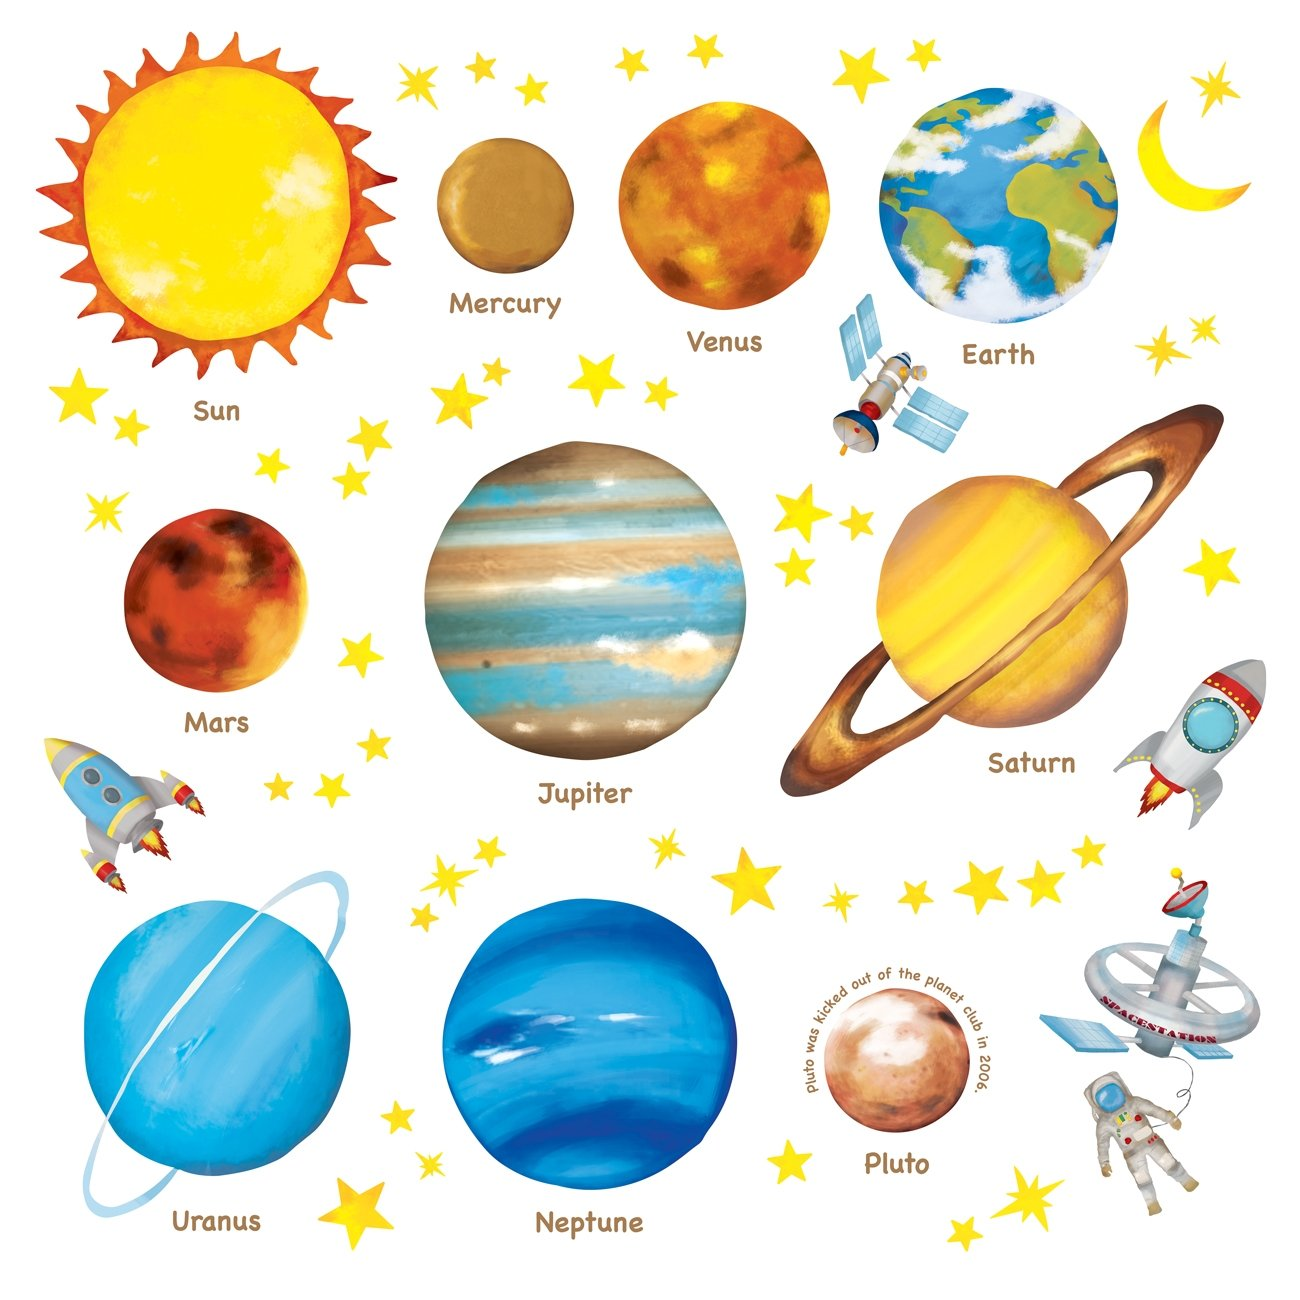 Decowall DW-1307 Planets in The Space Kids Wall Decals Wall Stickers Peel and Stick Removable Wall Stickers for Kids Nursery Bedroom Living Room by Decowall